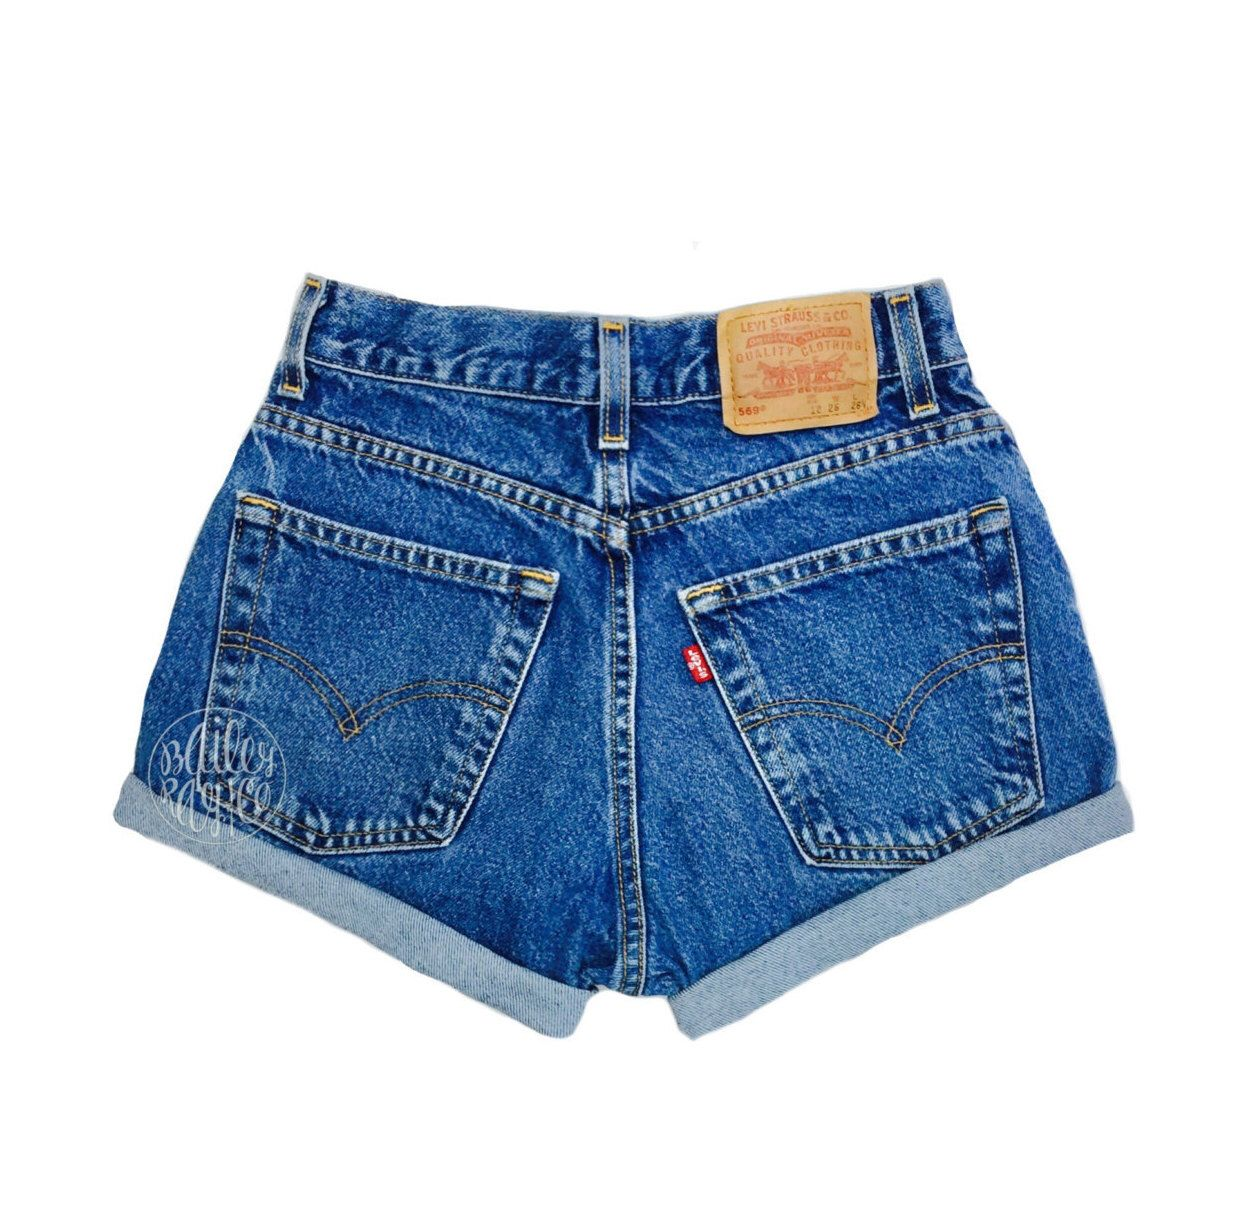 7e248cf710 Levis High Waisted Cuffed Denim Shorts Rolled Up Denim Shorts Plain Jean  Shorts by BaileyRayandCo on